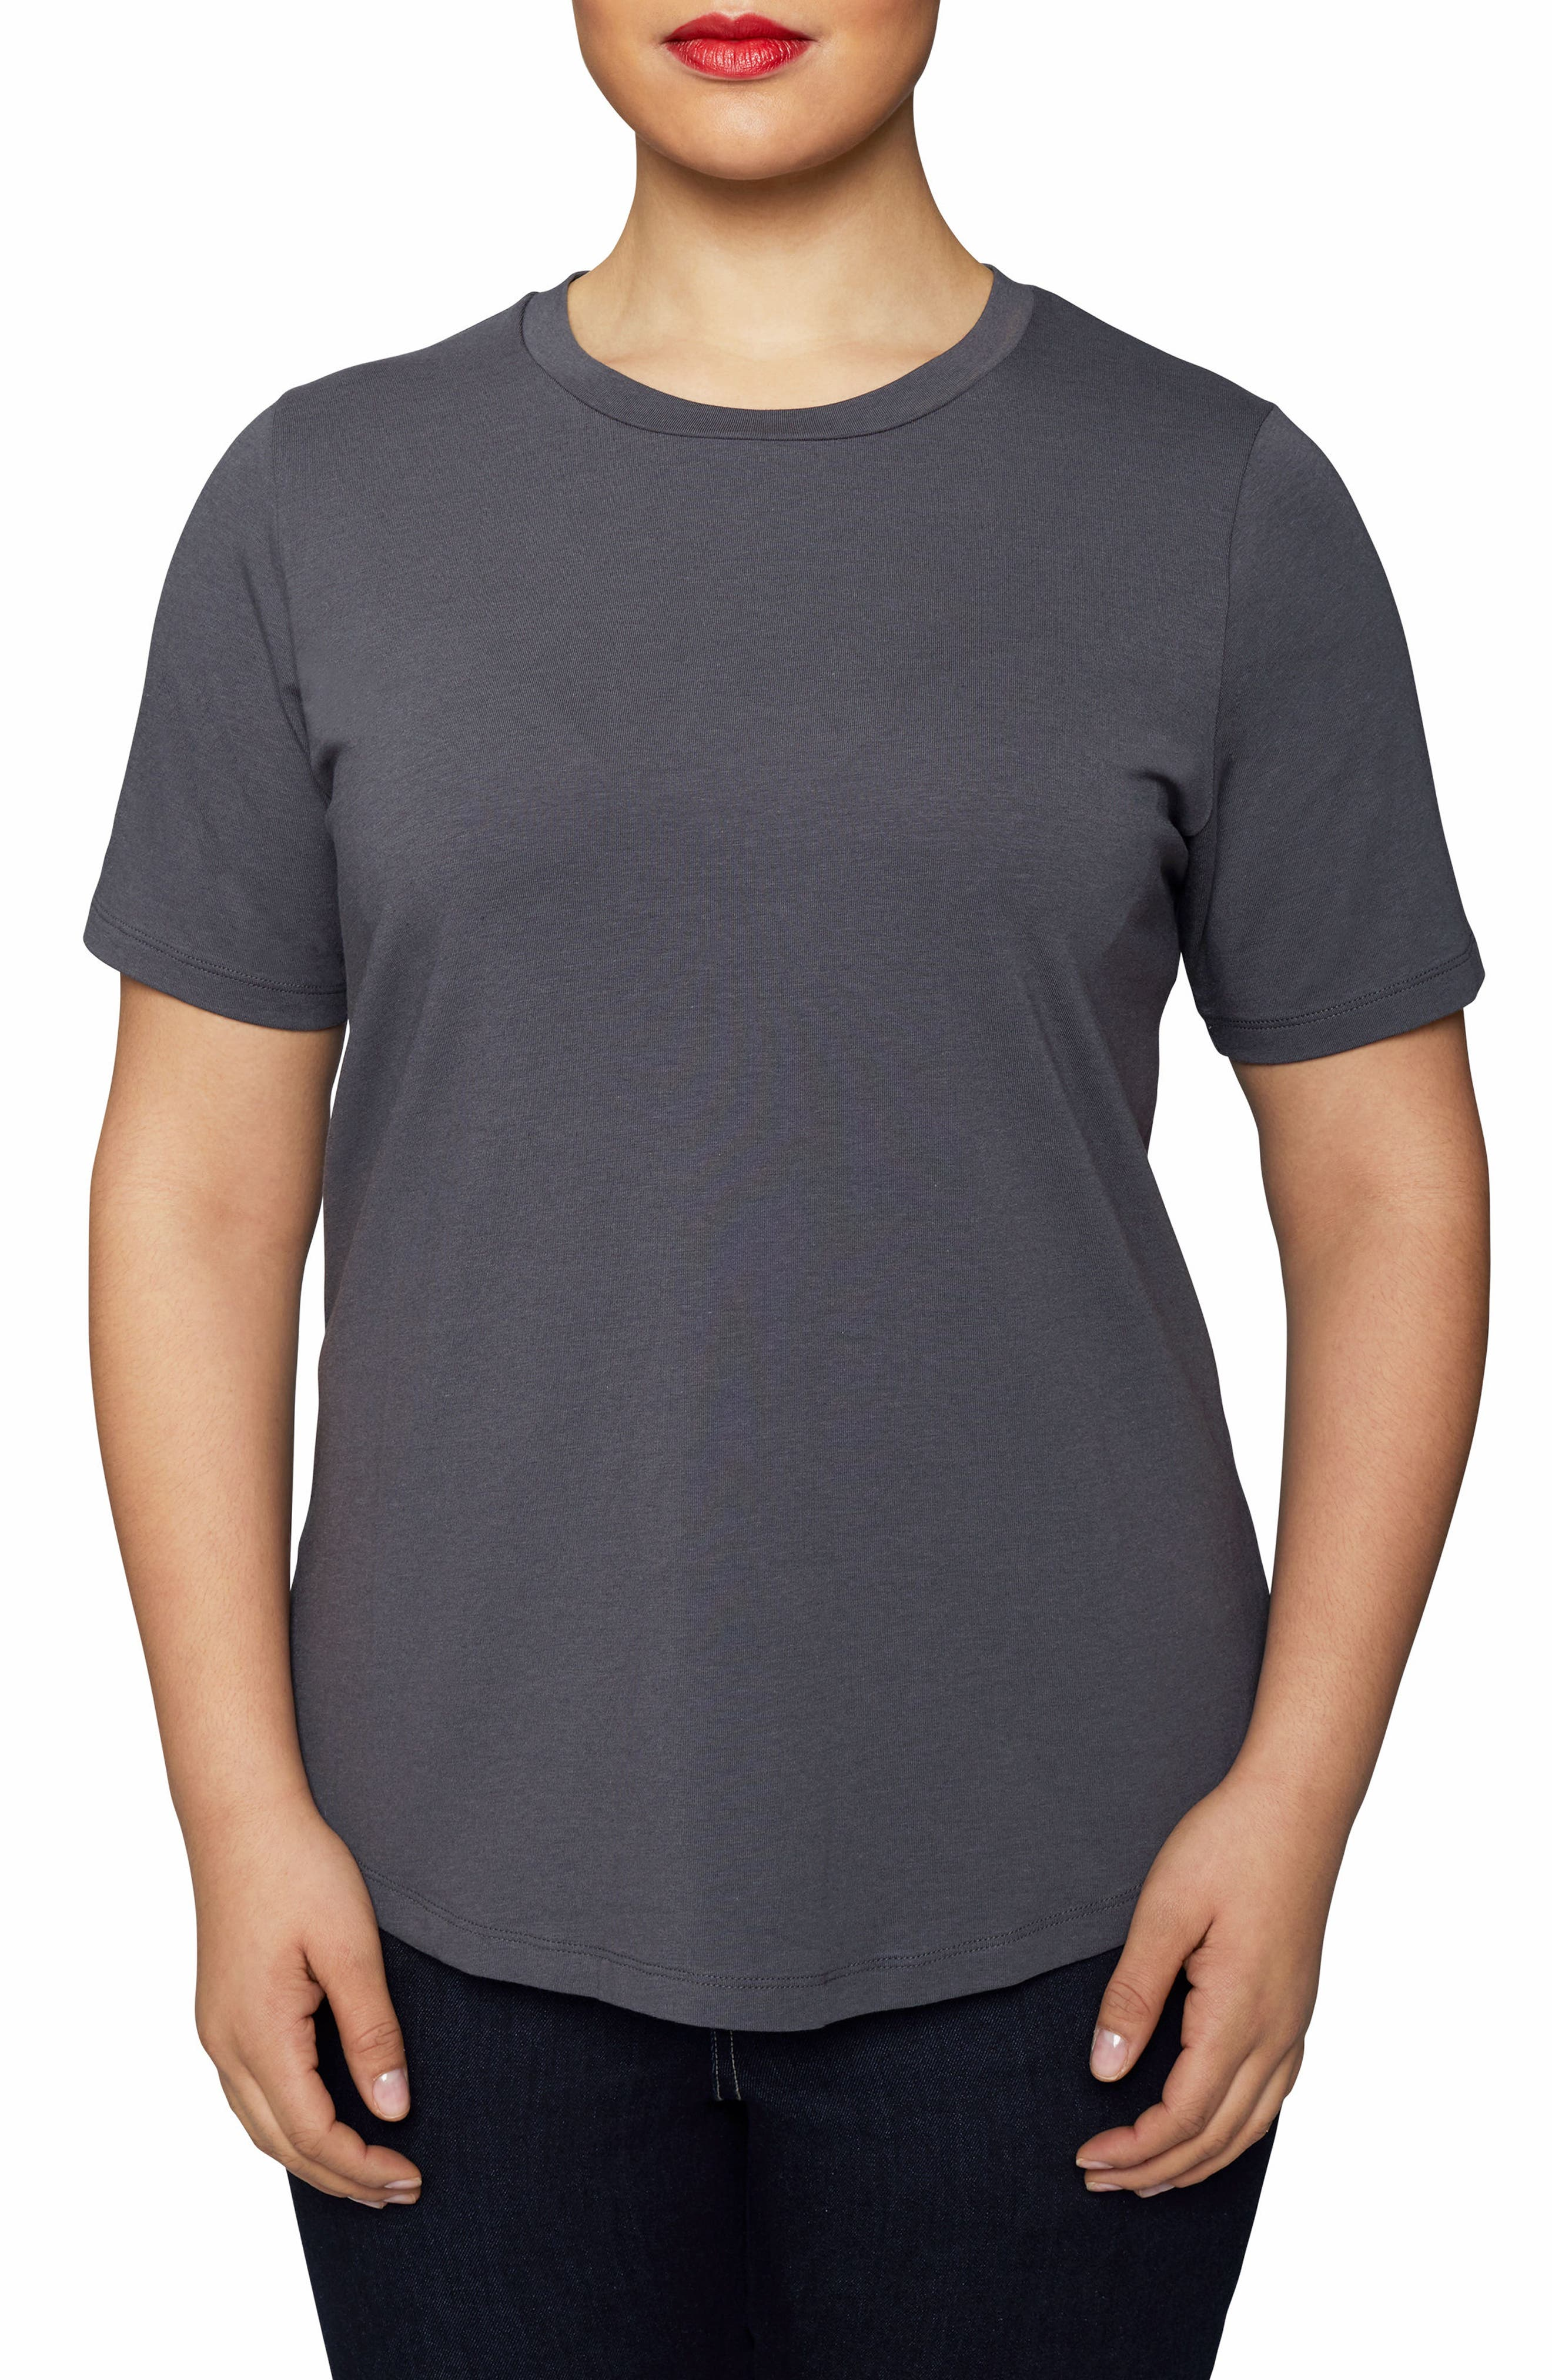 Tee Rex Tee,                         Main,                         color, Slate